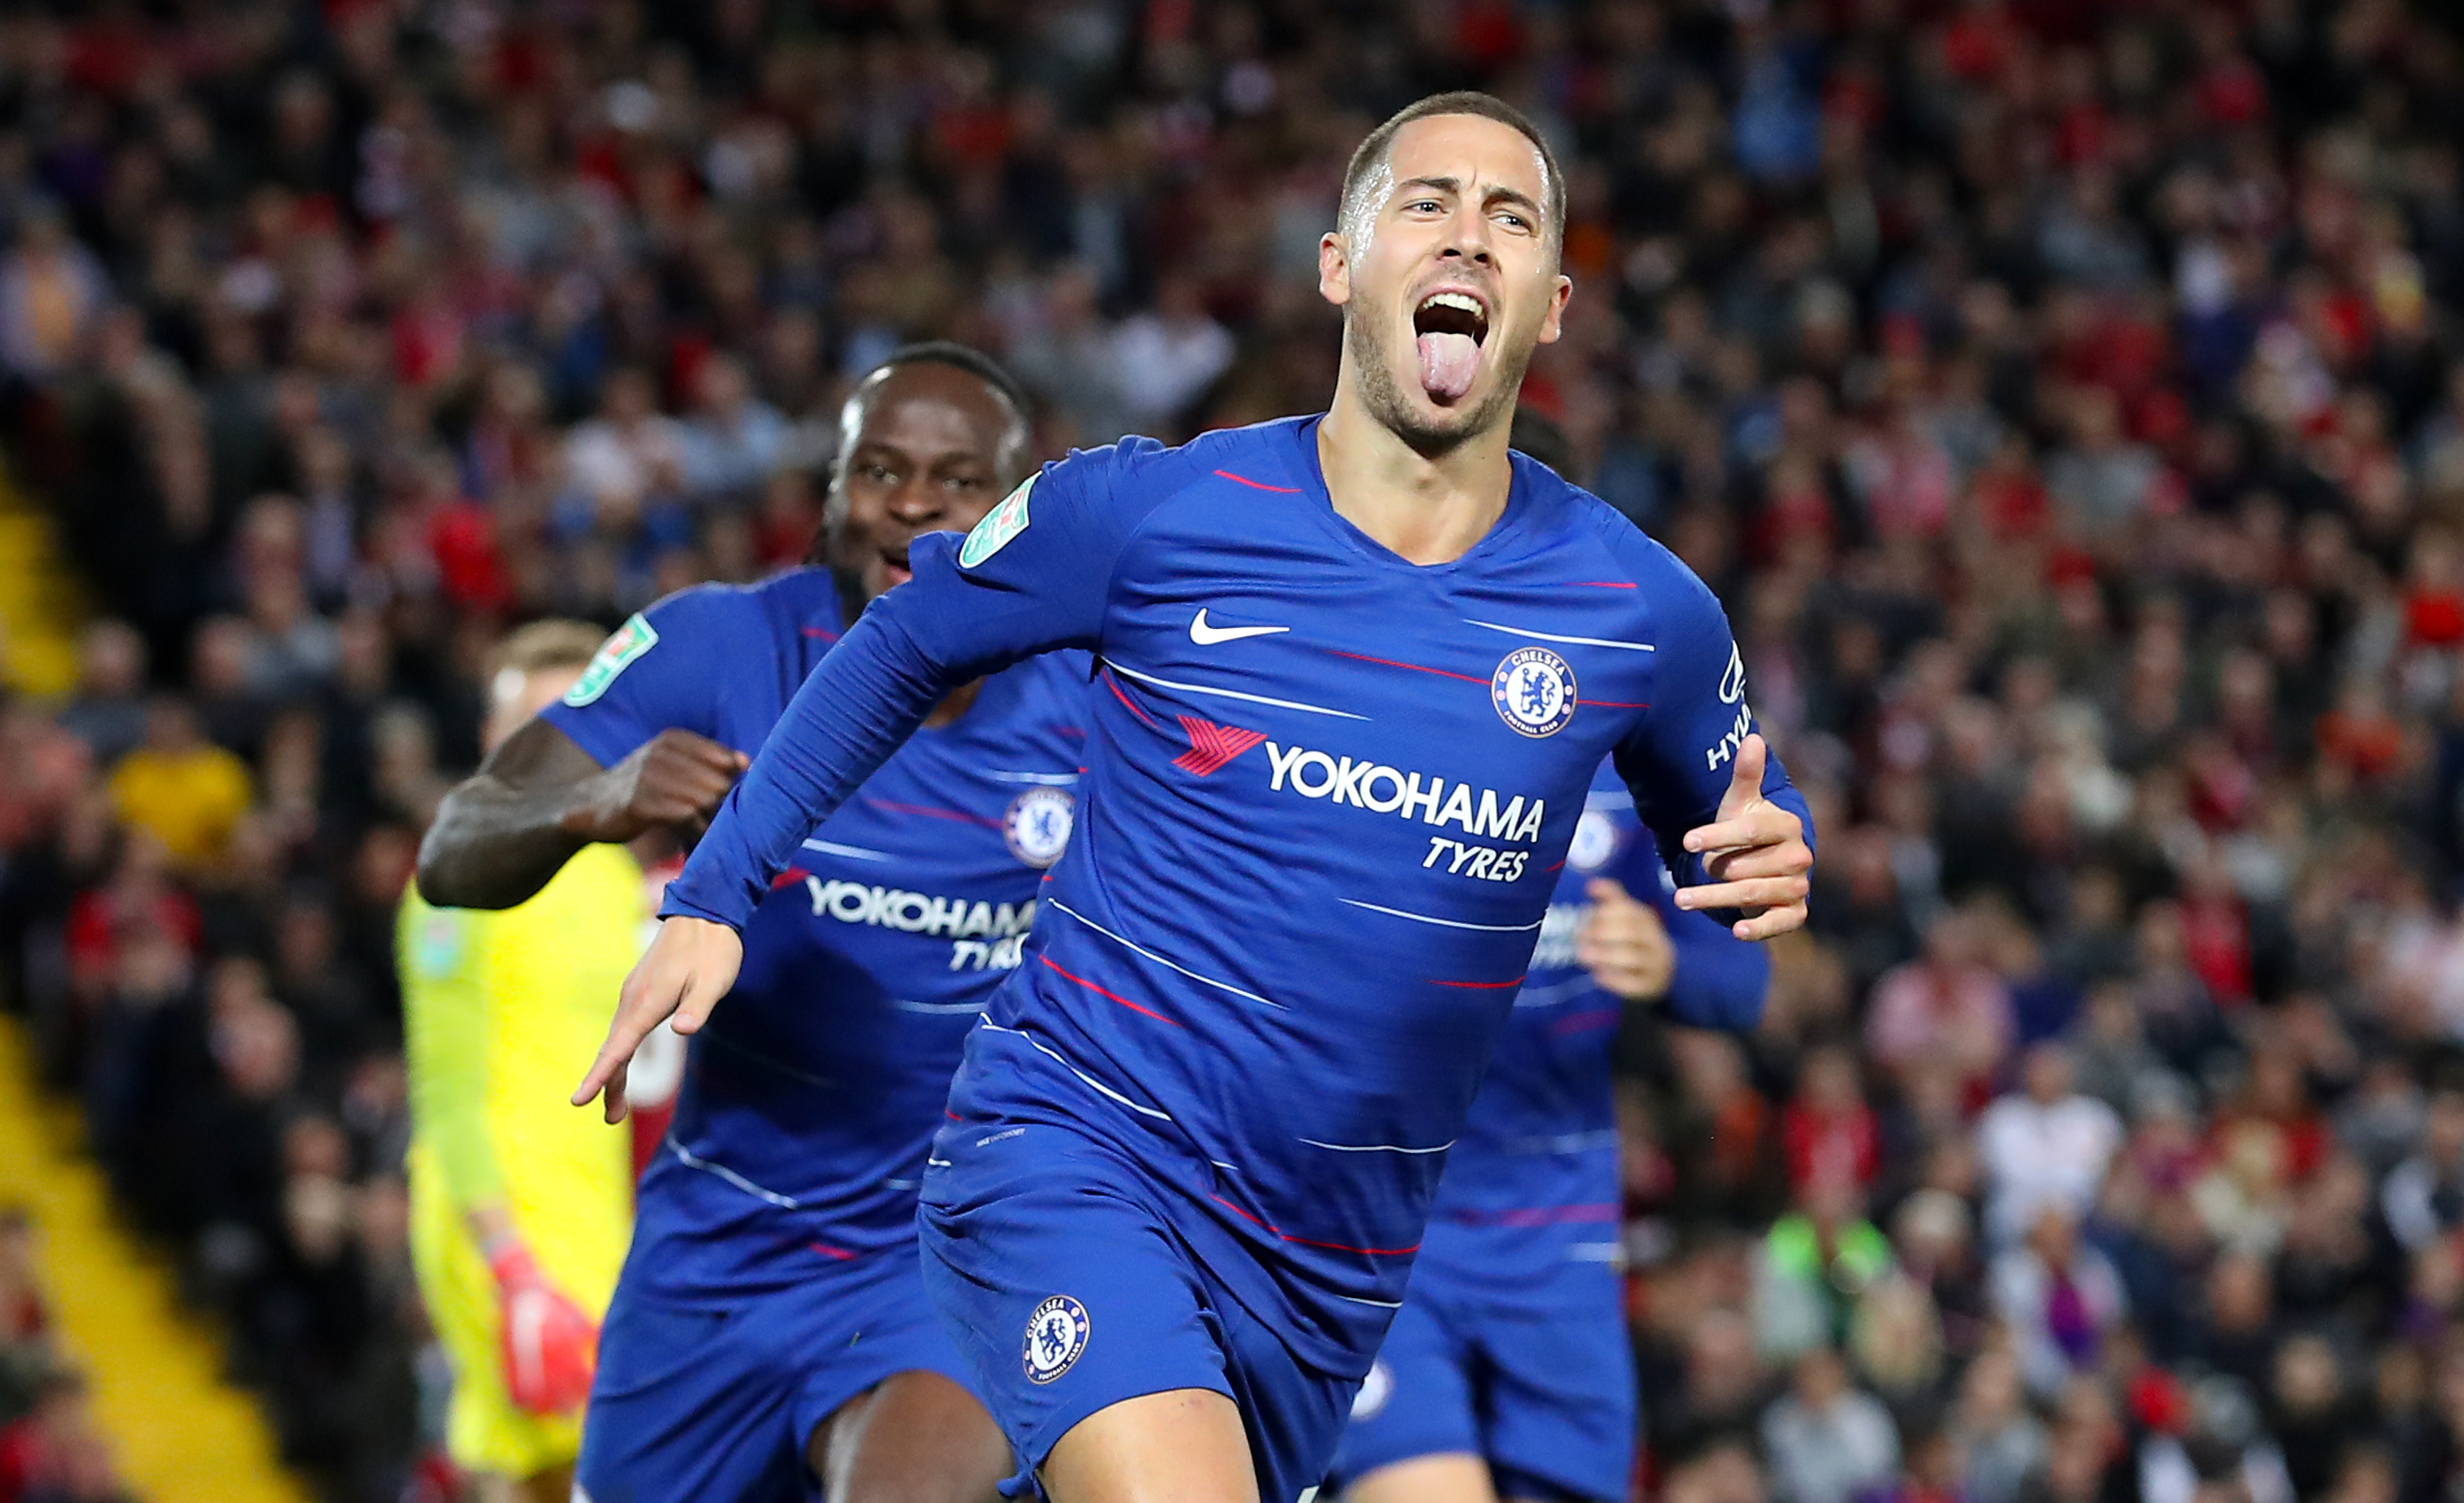 Maurizio Sarri says Liverpool are still 'step ahead' of Chelsea after draw